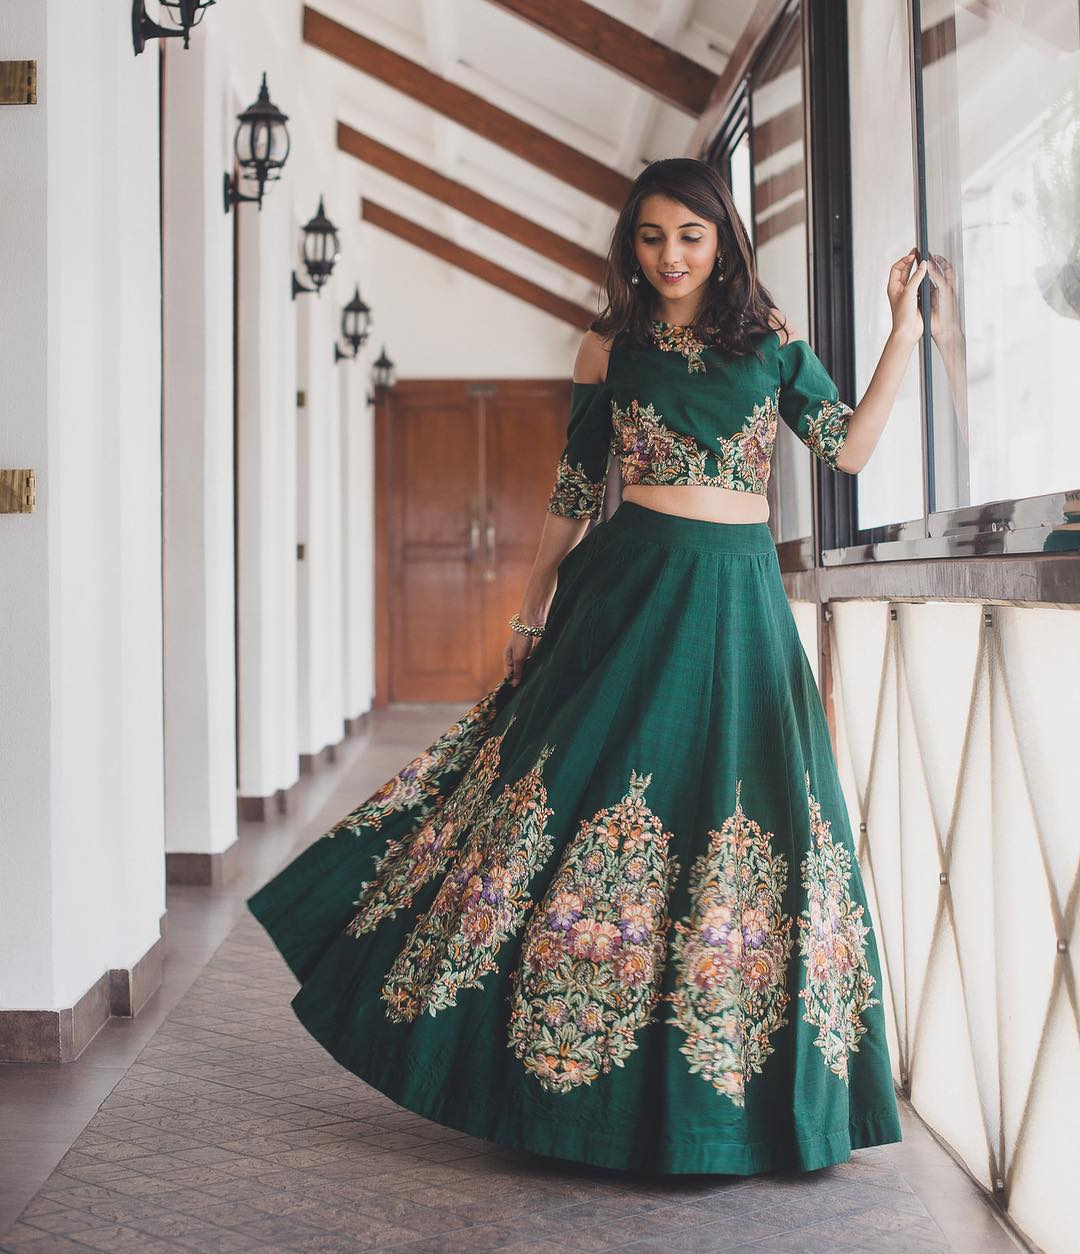 Bride in Bottle Green Crop Top and Skirt with Patchwork Embroidery | 11 Unique Lehenga Hues That Will Make You Ditch The Usual Red | FunctionMania